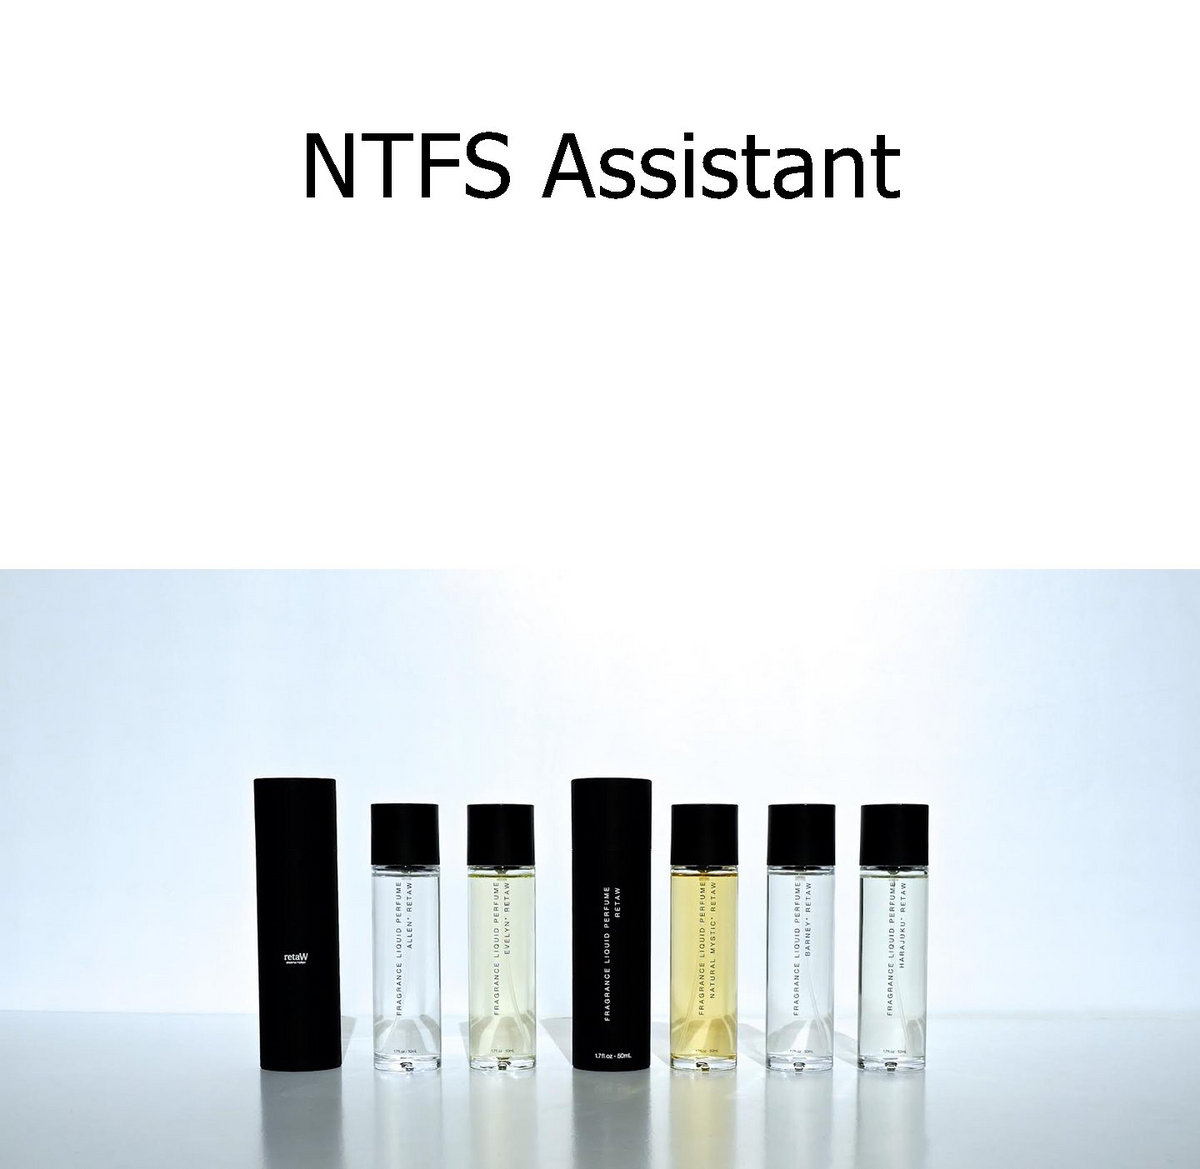 vers 3 0 NTFS Assistant how install for Mac Pro | motolosupi